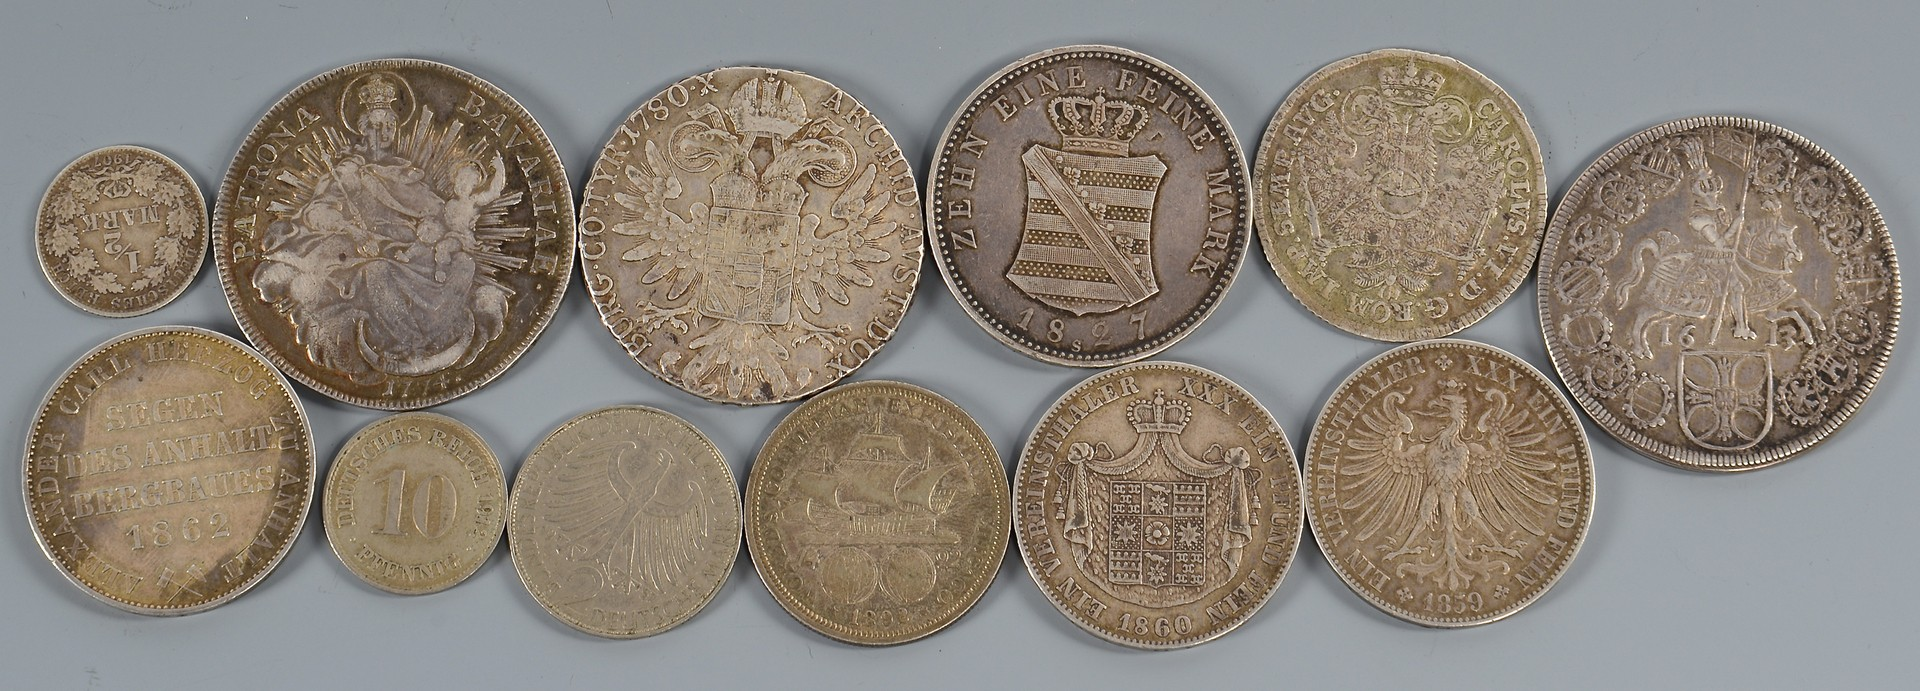 Lot 896: Group of 11 German Coins & 1 other